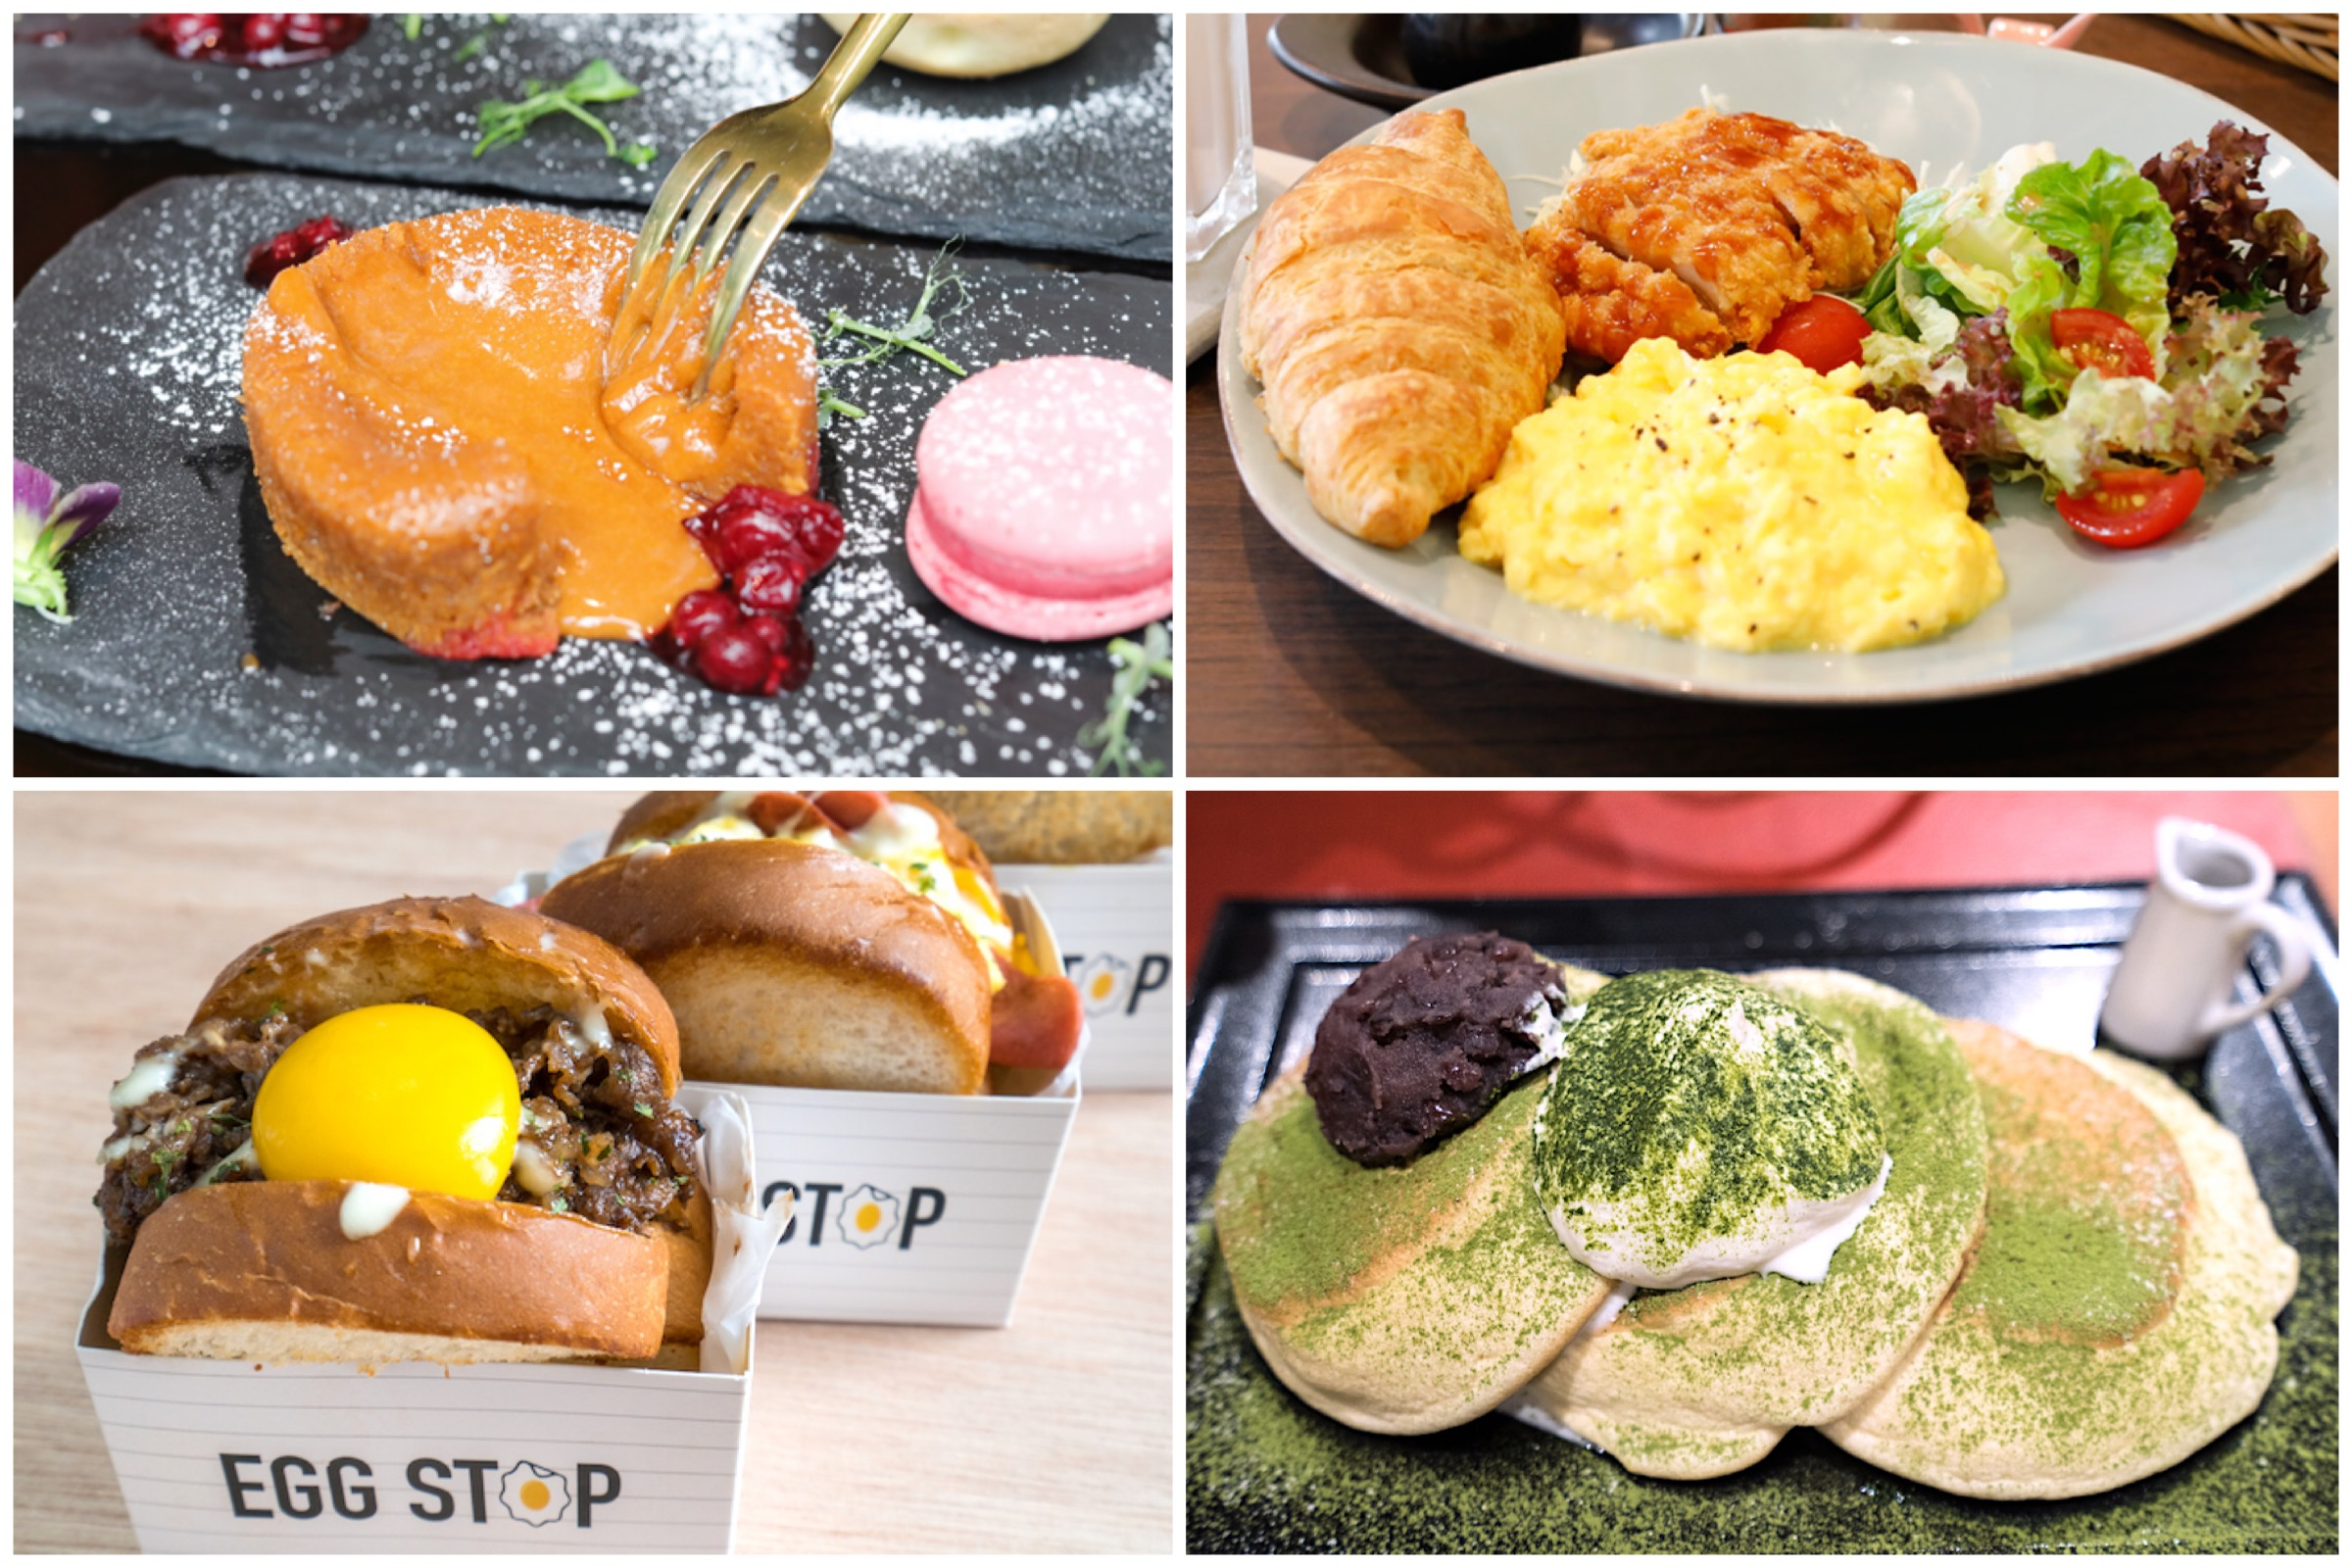 10 NEW Cafés In Singapore August 2018 - Wobbly Japanese Pancakes, Korean Egg Stop Sandwich, A Hidden Japanese Cafe